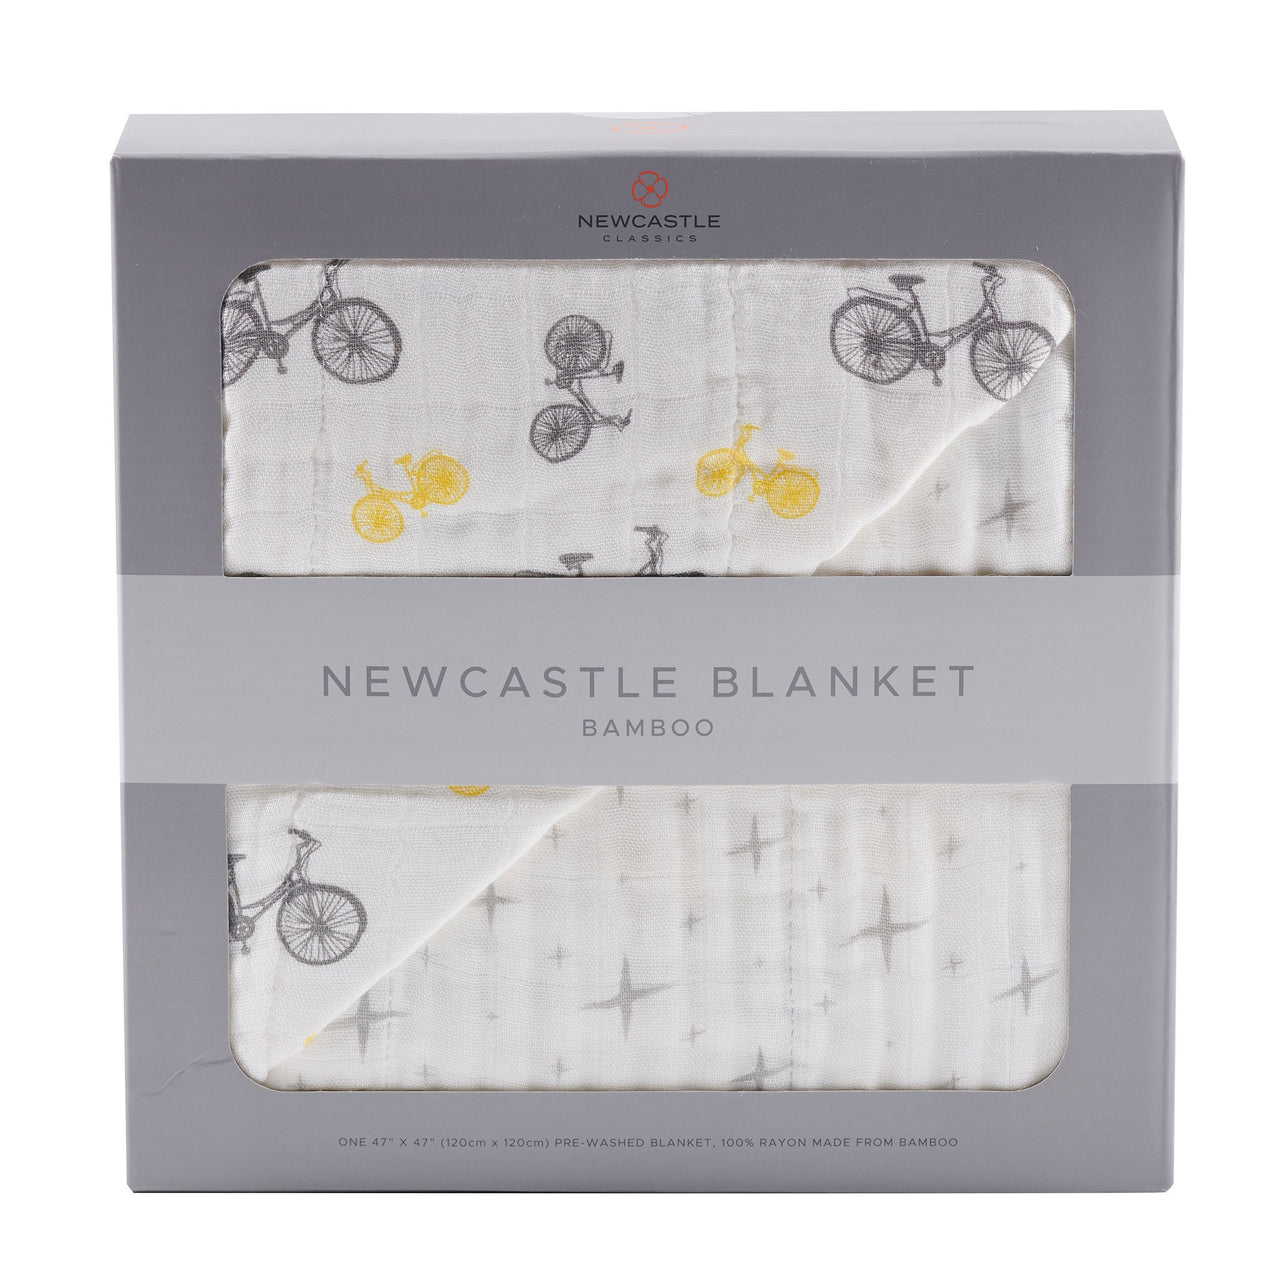 Blankets & Pillows - Vintage Bicycle And North Star Newcastle Blanket